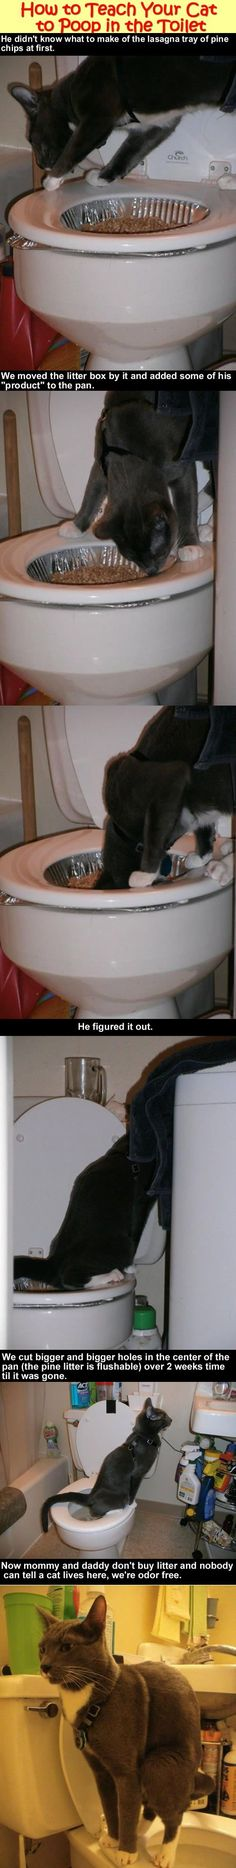 omg. I think I want to try this lol I hate the litter box!